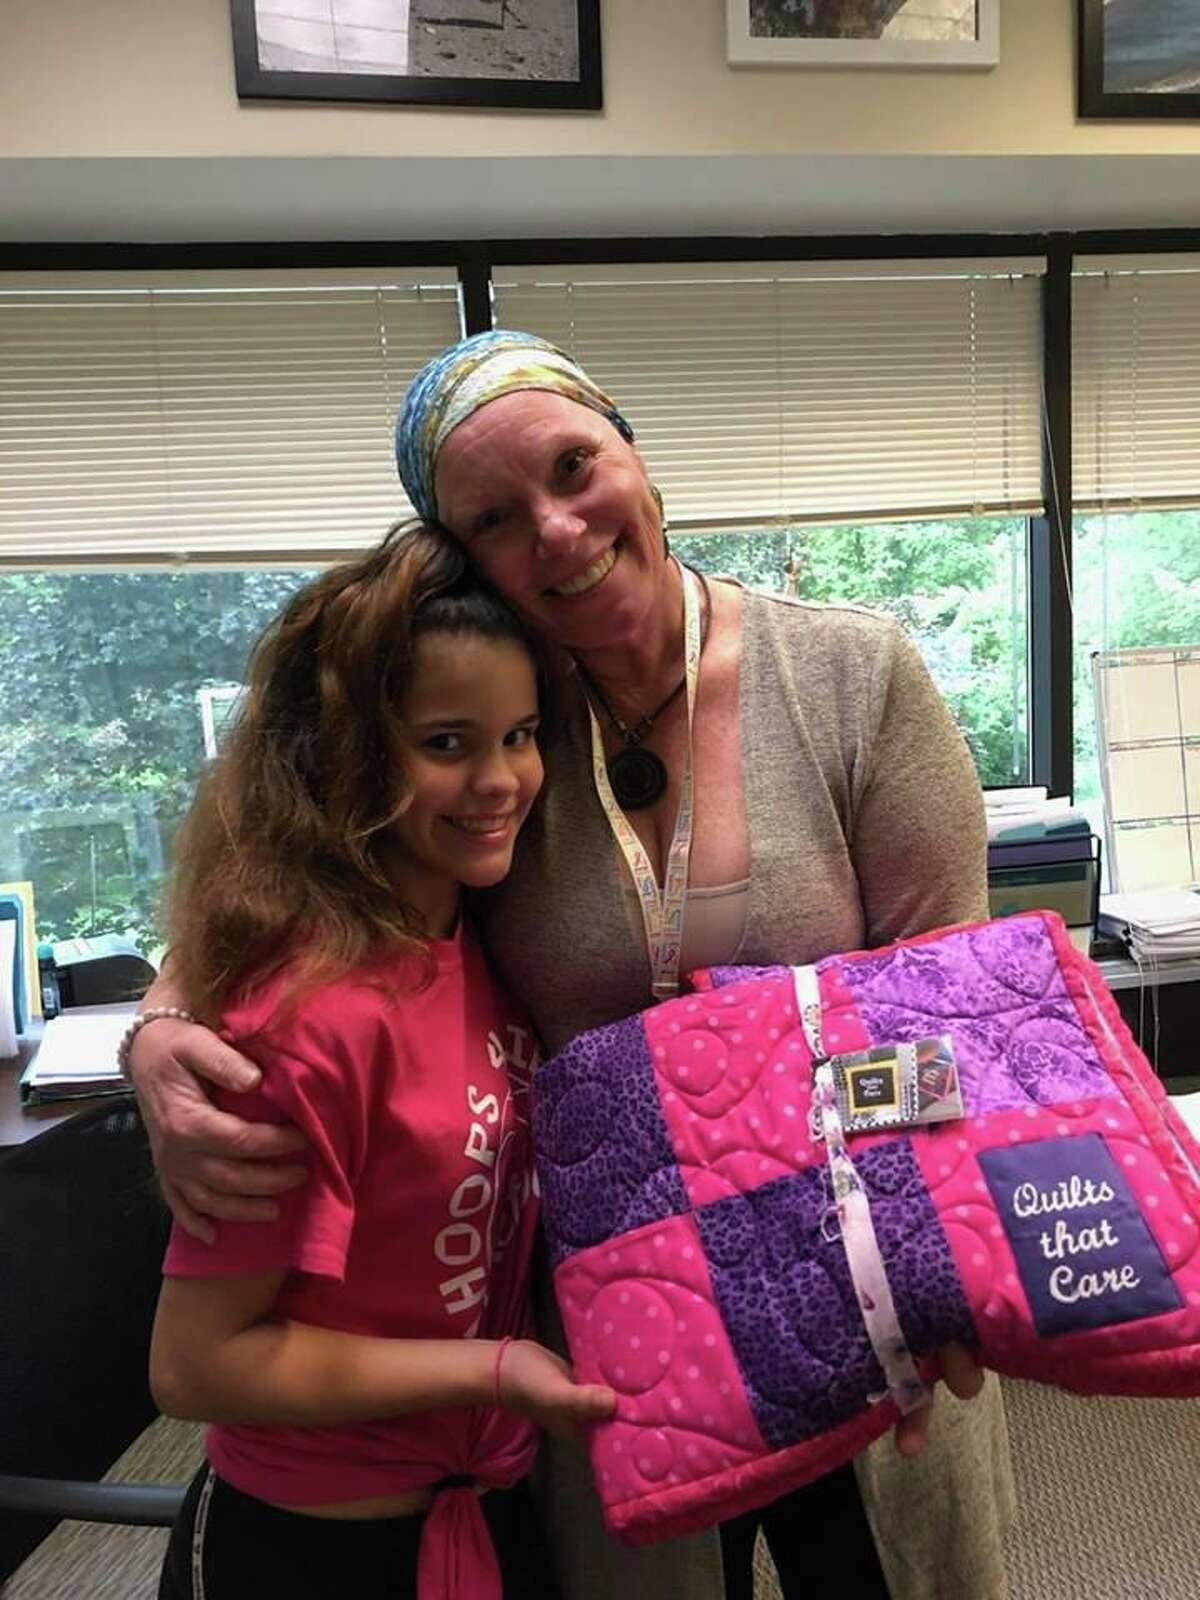 Quilts that Care, Inc., based in Waterbury, announced that it has canceled its in-person fundraisers for 2021. Instead, an appeal will run through the year.